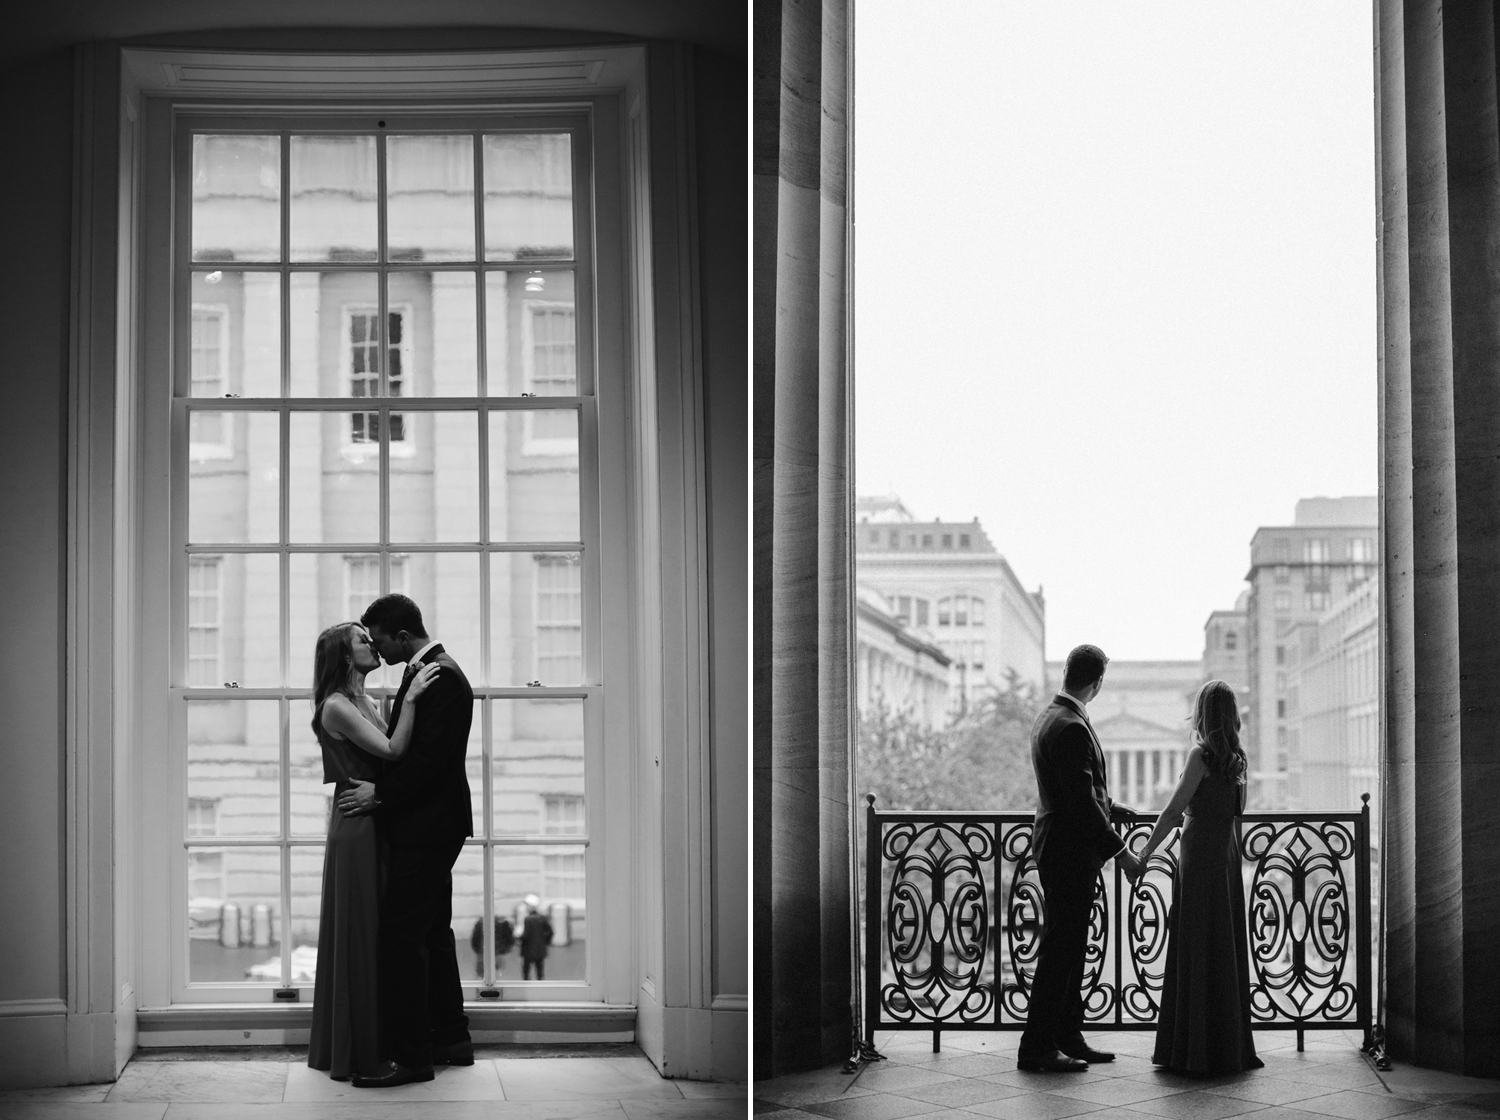 washington-dc-portrait-gallery-elopement-wedding-photography 40.jpg